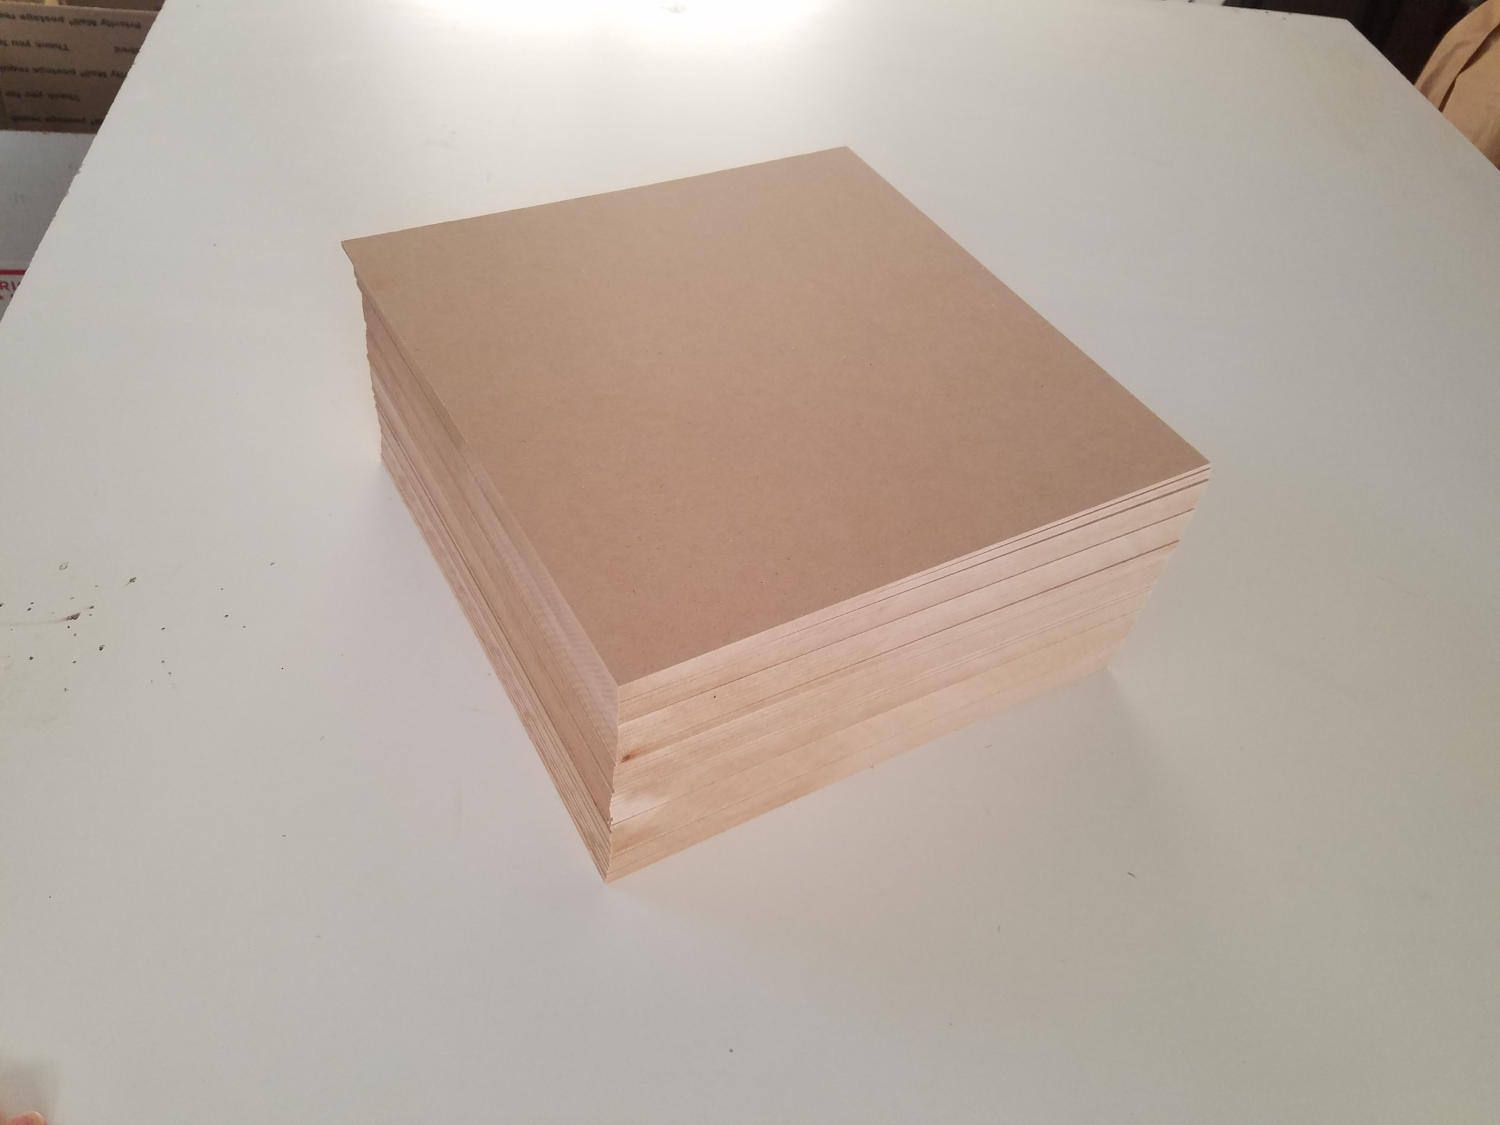 1 4 mdf 12x12 24 sheets medium density fiberboard for Thin wood sheets for crafts